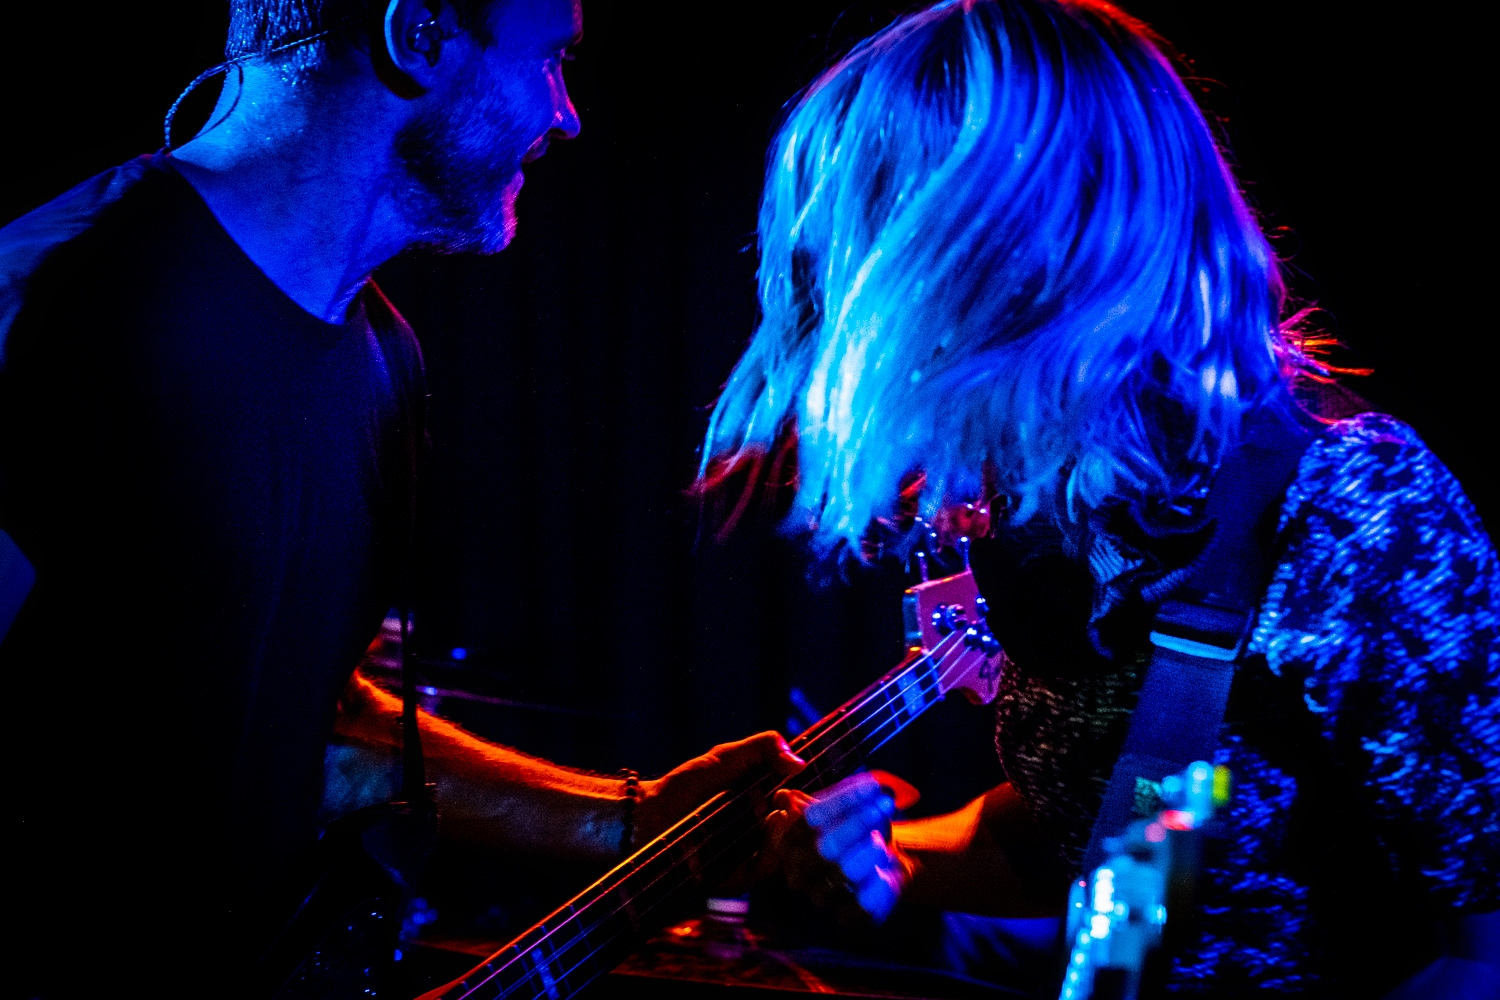 20180820-010-The-Joy-Formidable-@-Blue-Shell-Köln-col-Cred_Michael_Lamertz_@indie.and_.more_.jpg